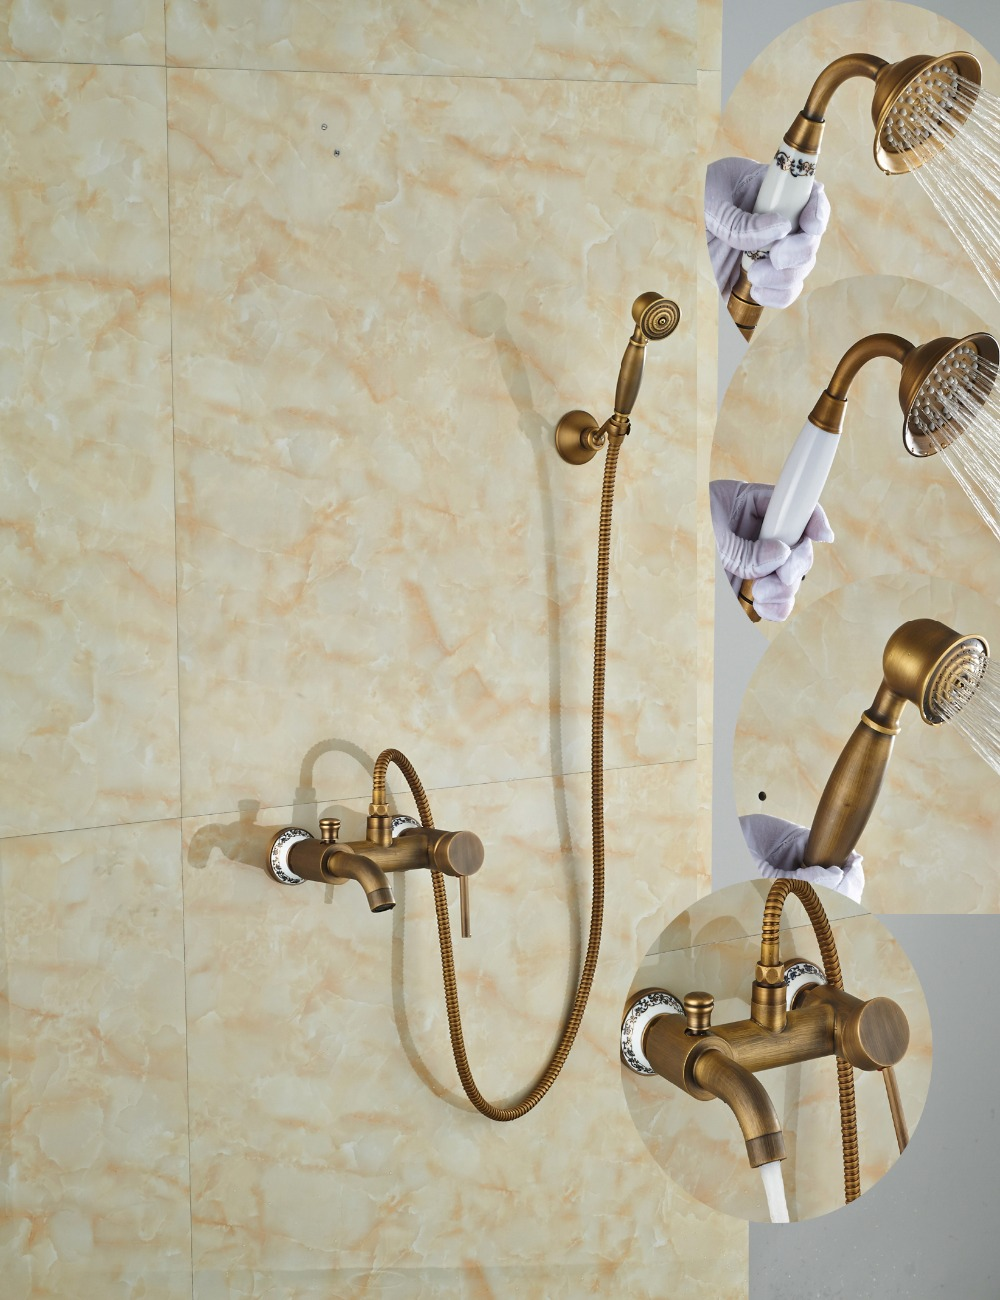 Wholesale And Retail Antique Brass Wall Mounted Bathroom Rain Shower Faucet Head Faucet Tub Spout Mixer Tap luxury wholesale and retail promotion antique brass wall mounted 8 round rain shower faucet set single handle mixer